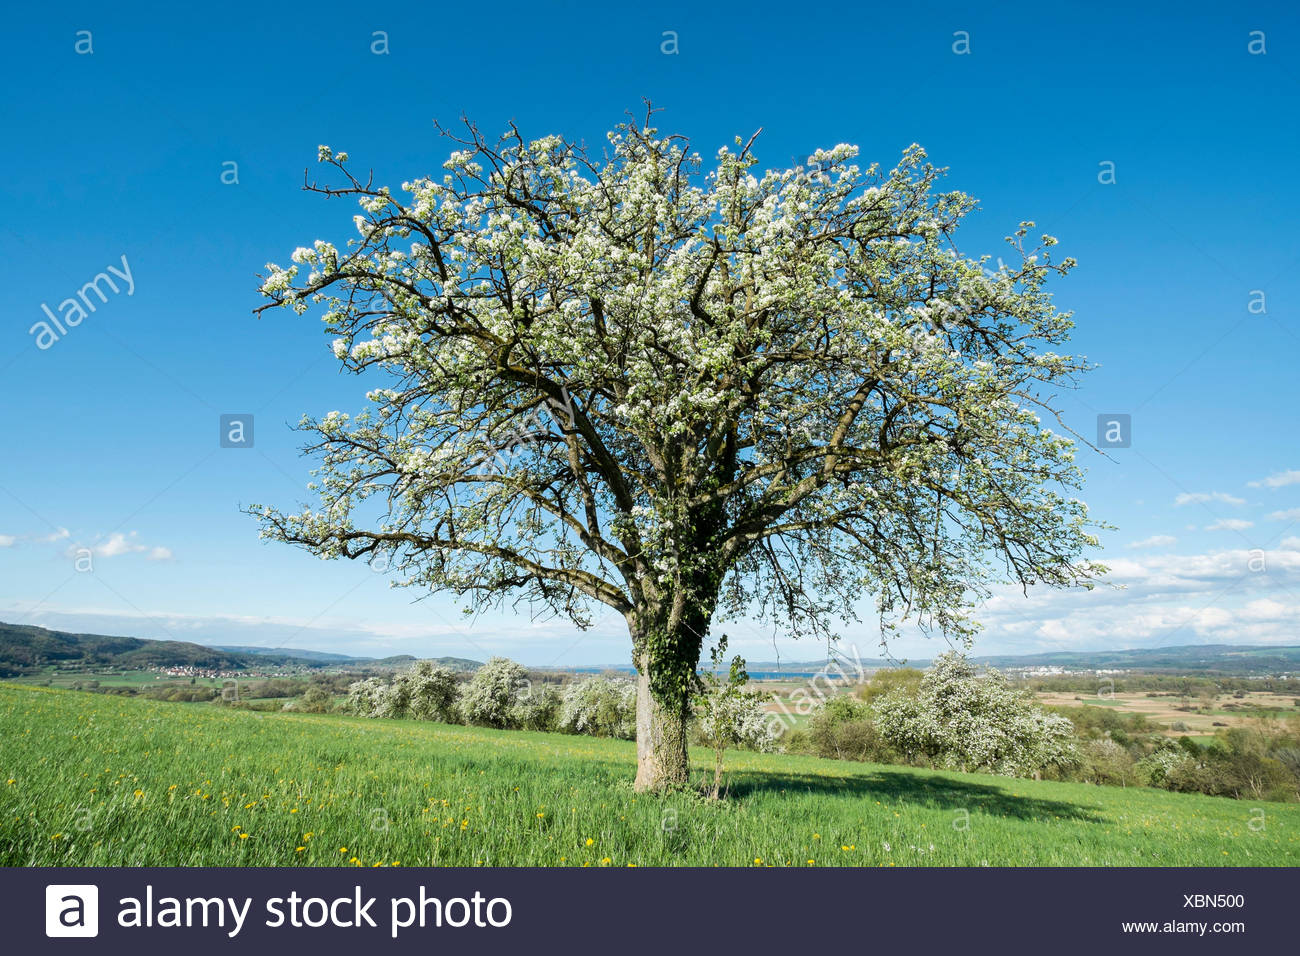 Old fruit tree in blossom on a meadow, Baden-Württemberg, Germany - Stock Image